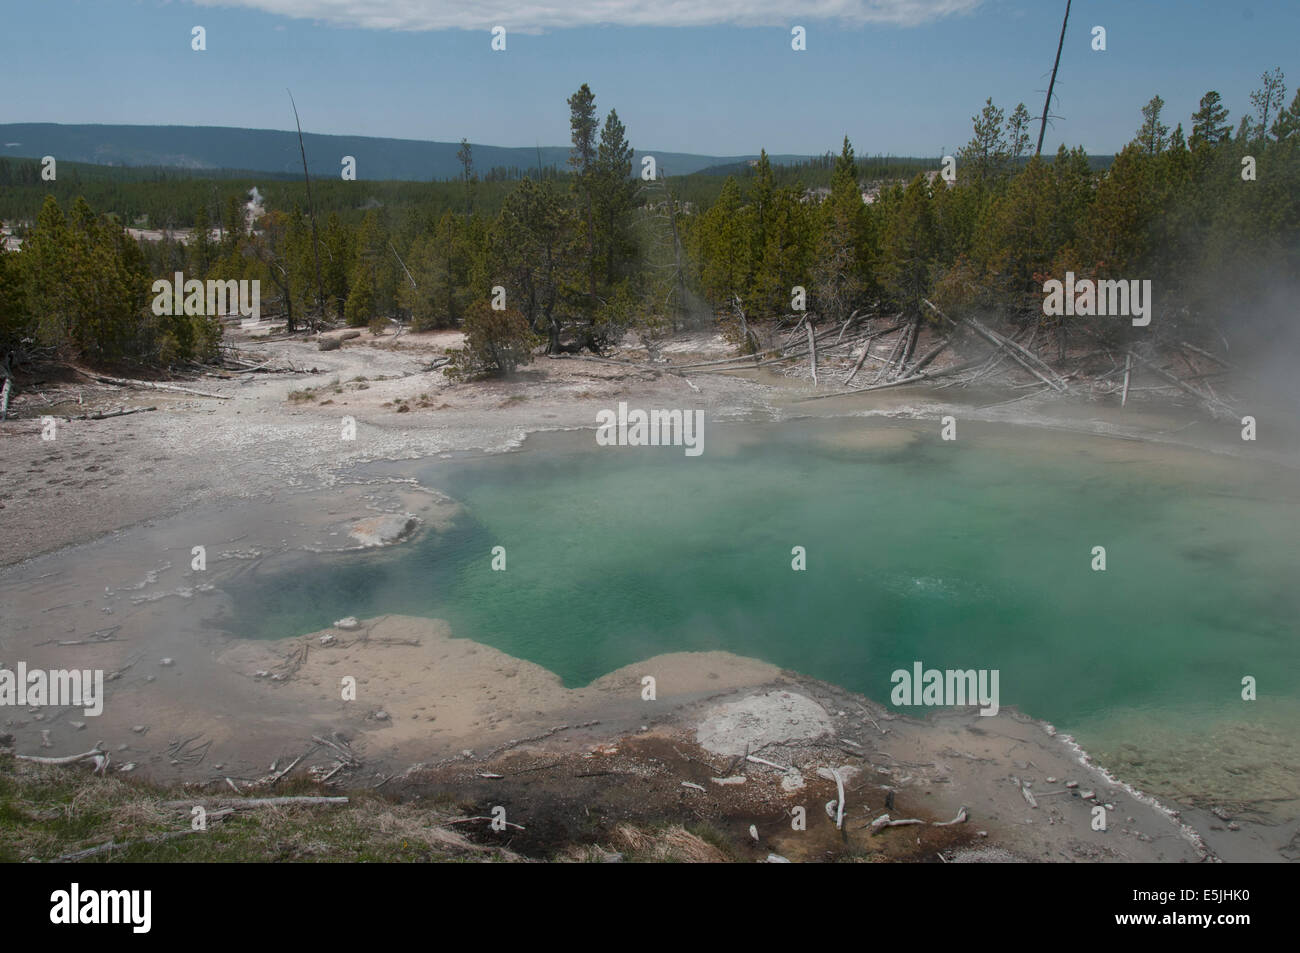 The Emerald Pool at Norris Geyser Basin. Norris Geyser Basin supplies the calcium carbonate water that flows underground - Stock Image